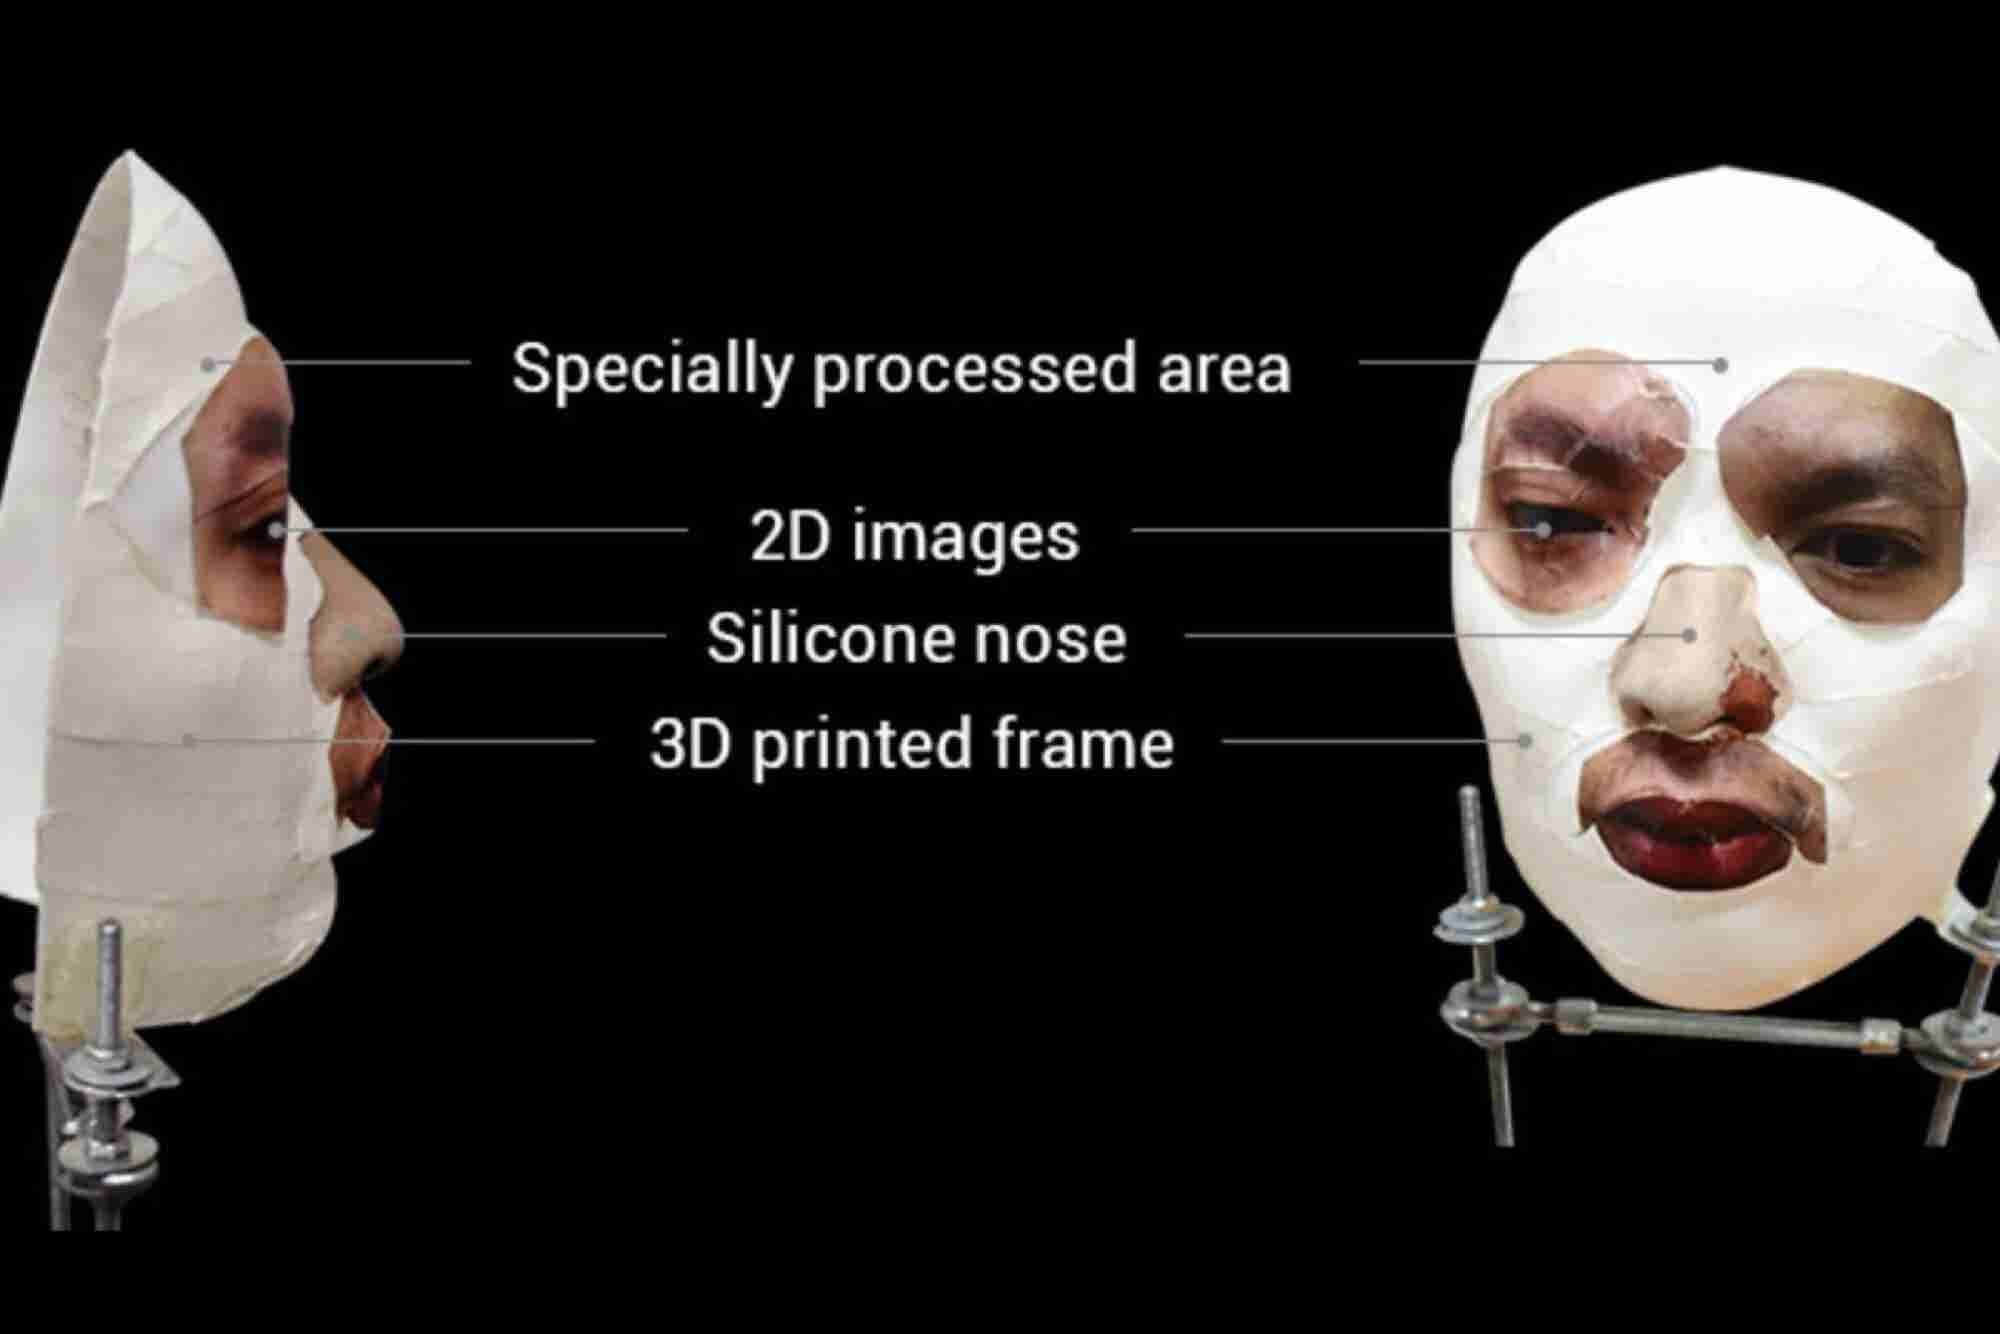 Researchers Claim They Can Dupe iPhone X Face ID With a Mask